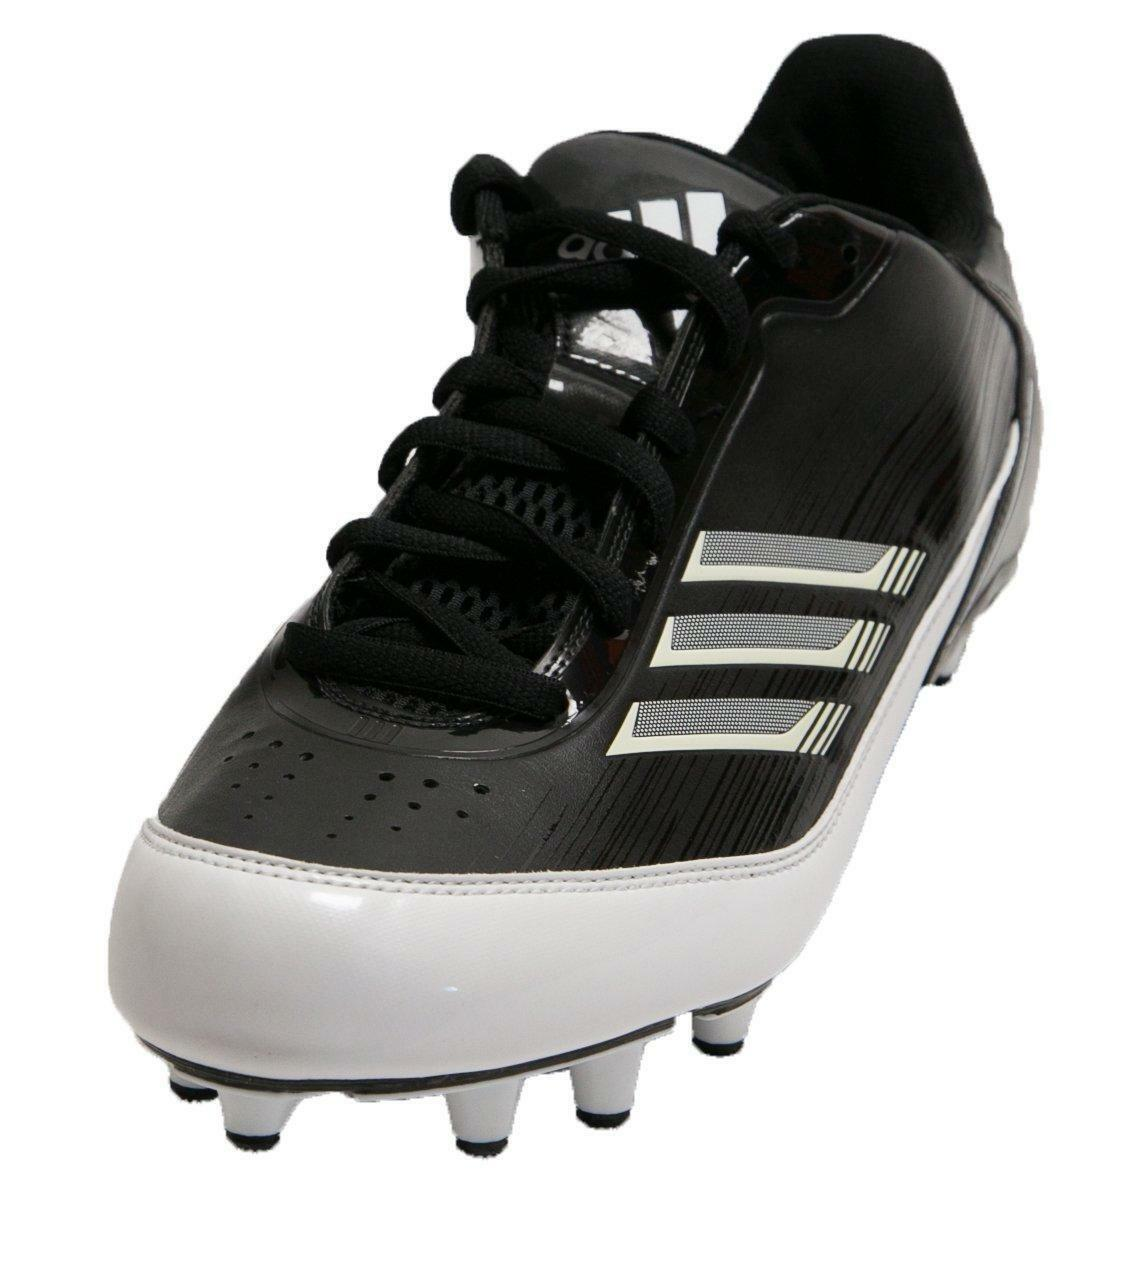 Adidas AS SMU Scorch X Fly Low NC Mens Football Cleats Black White Shoes